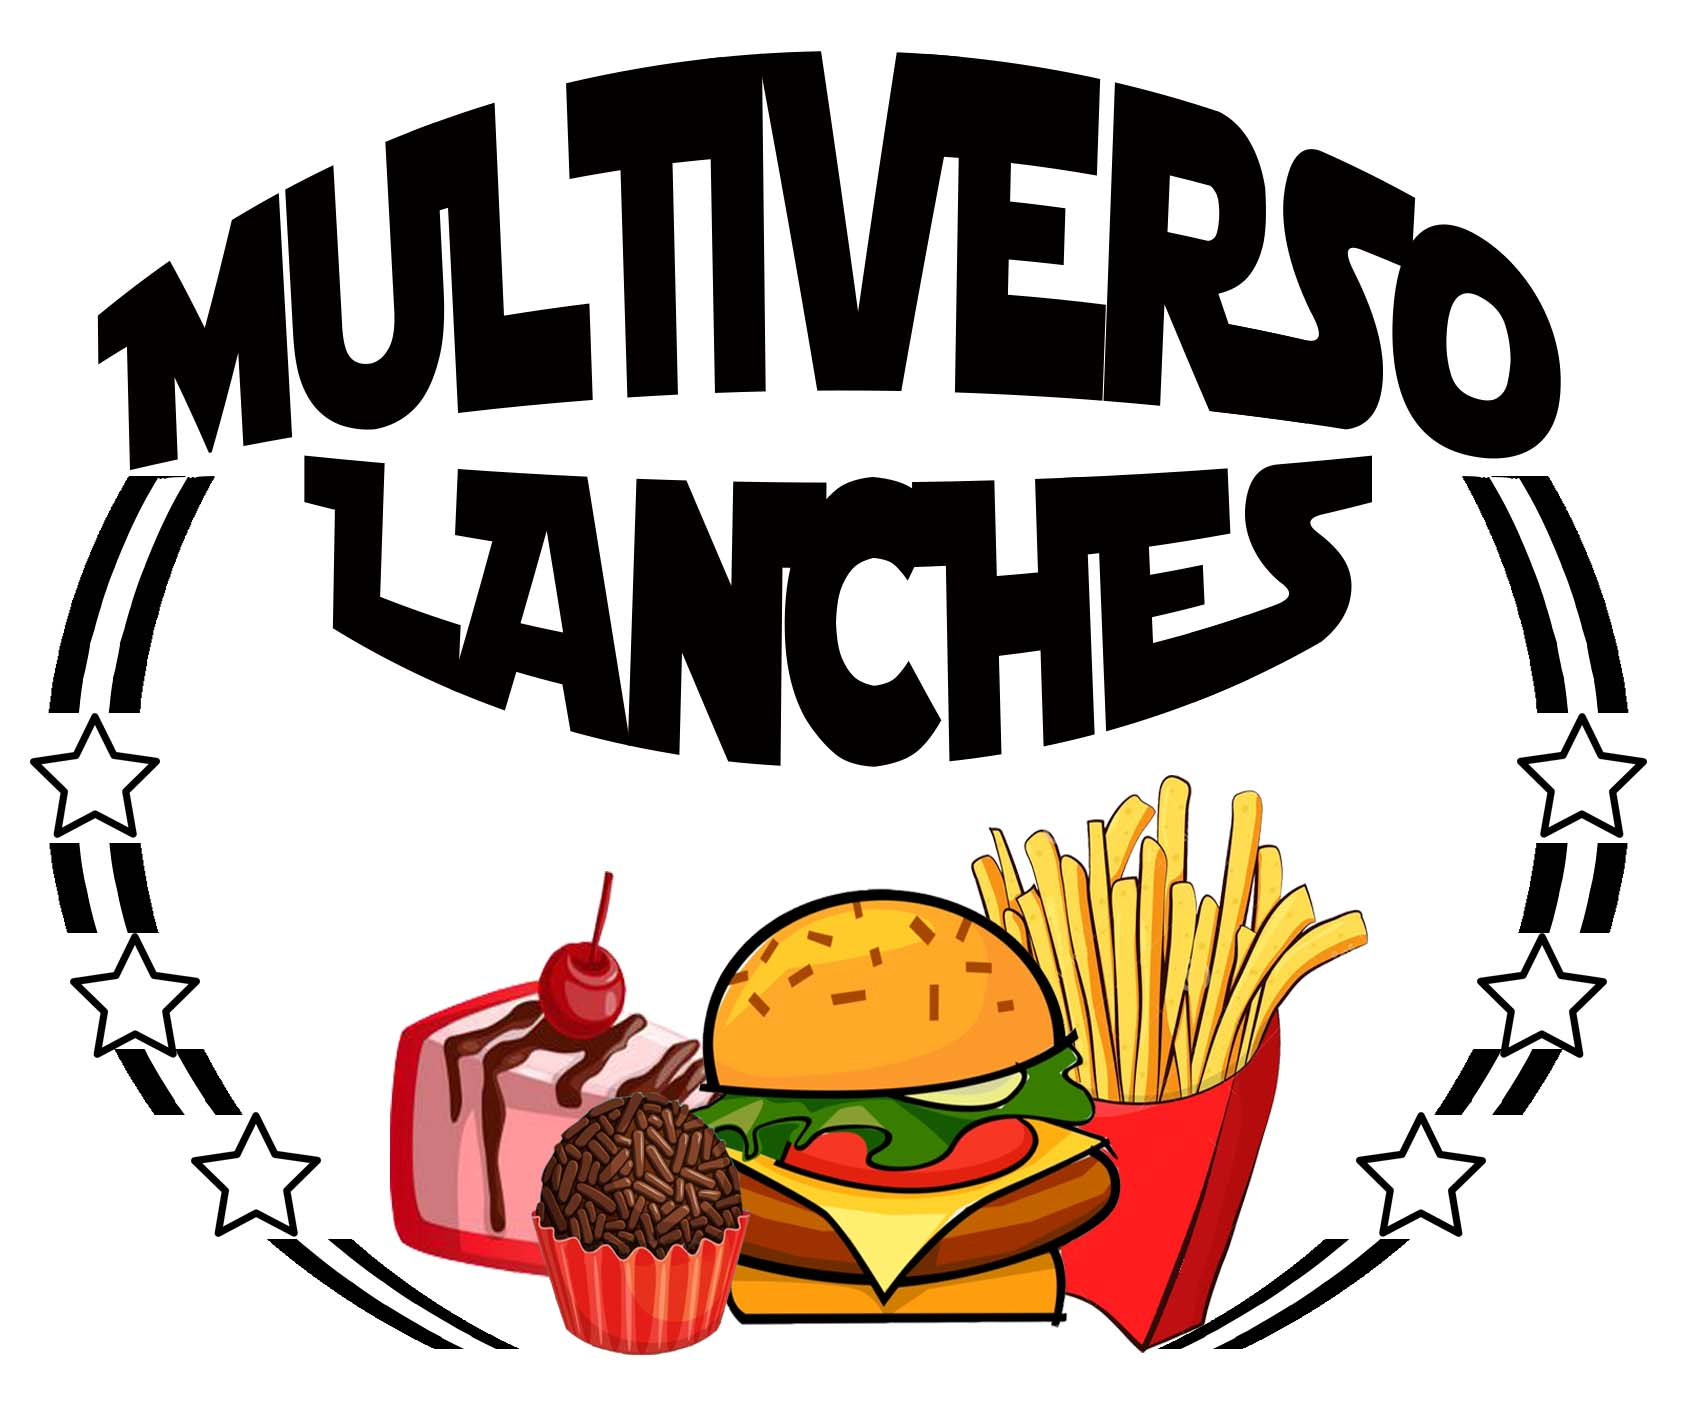 Multiverso Lanches